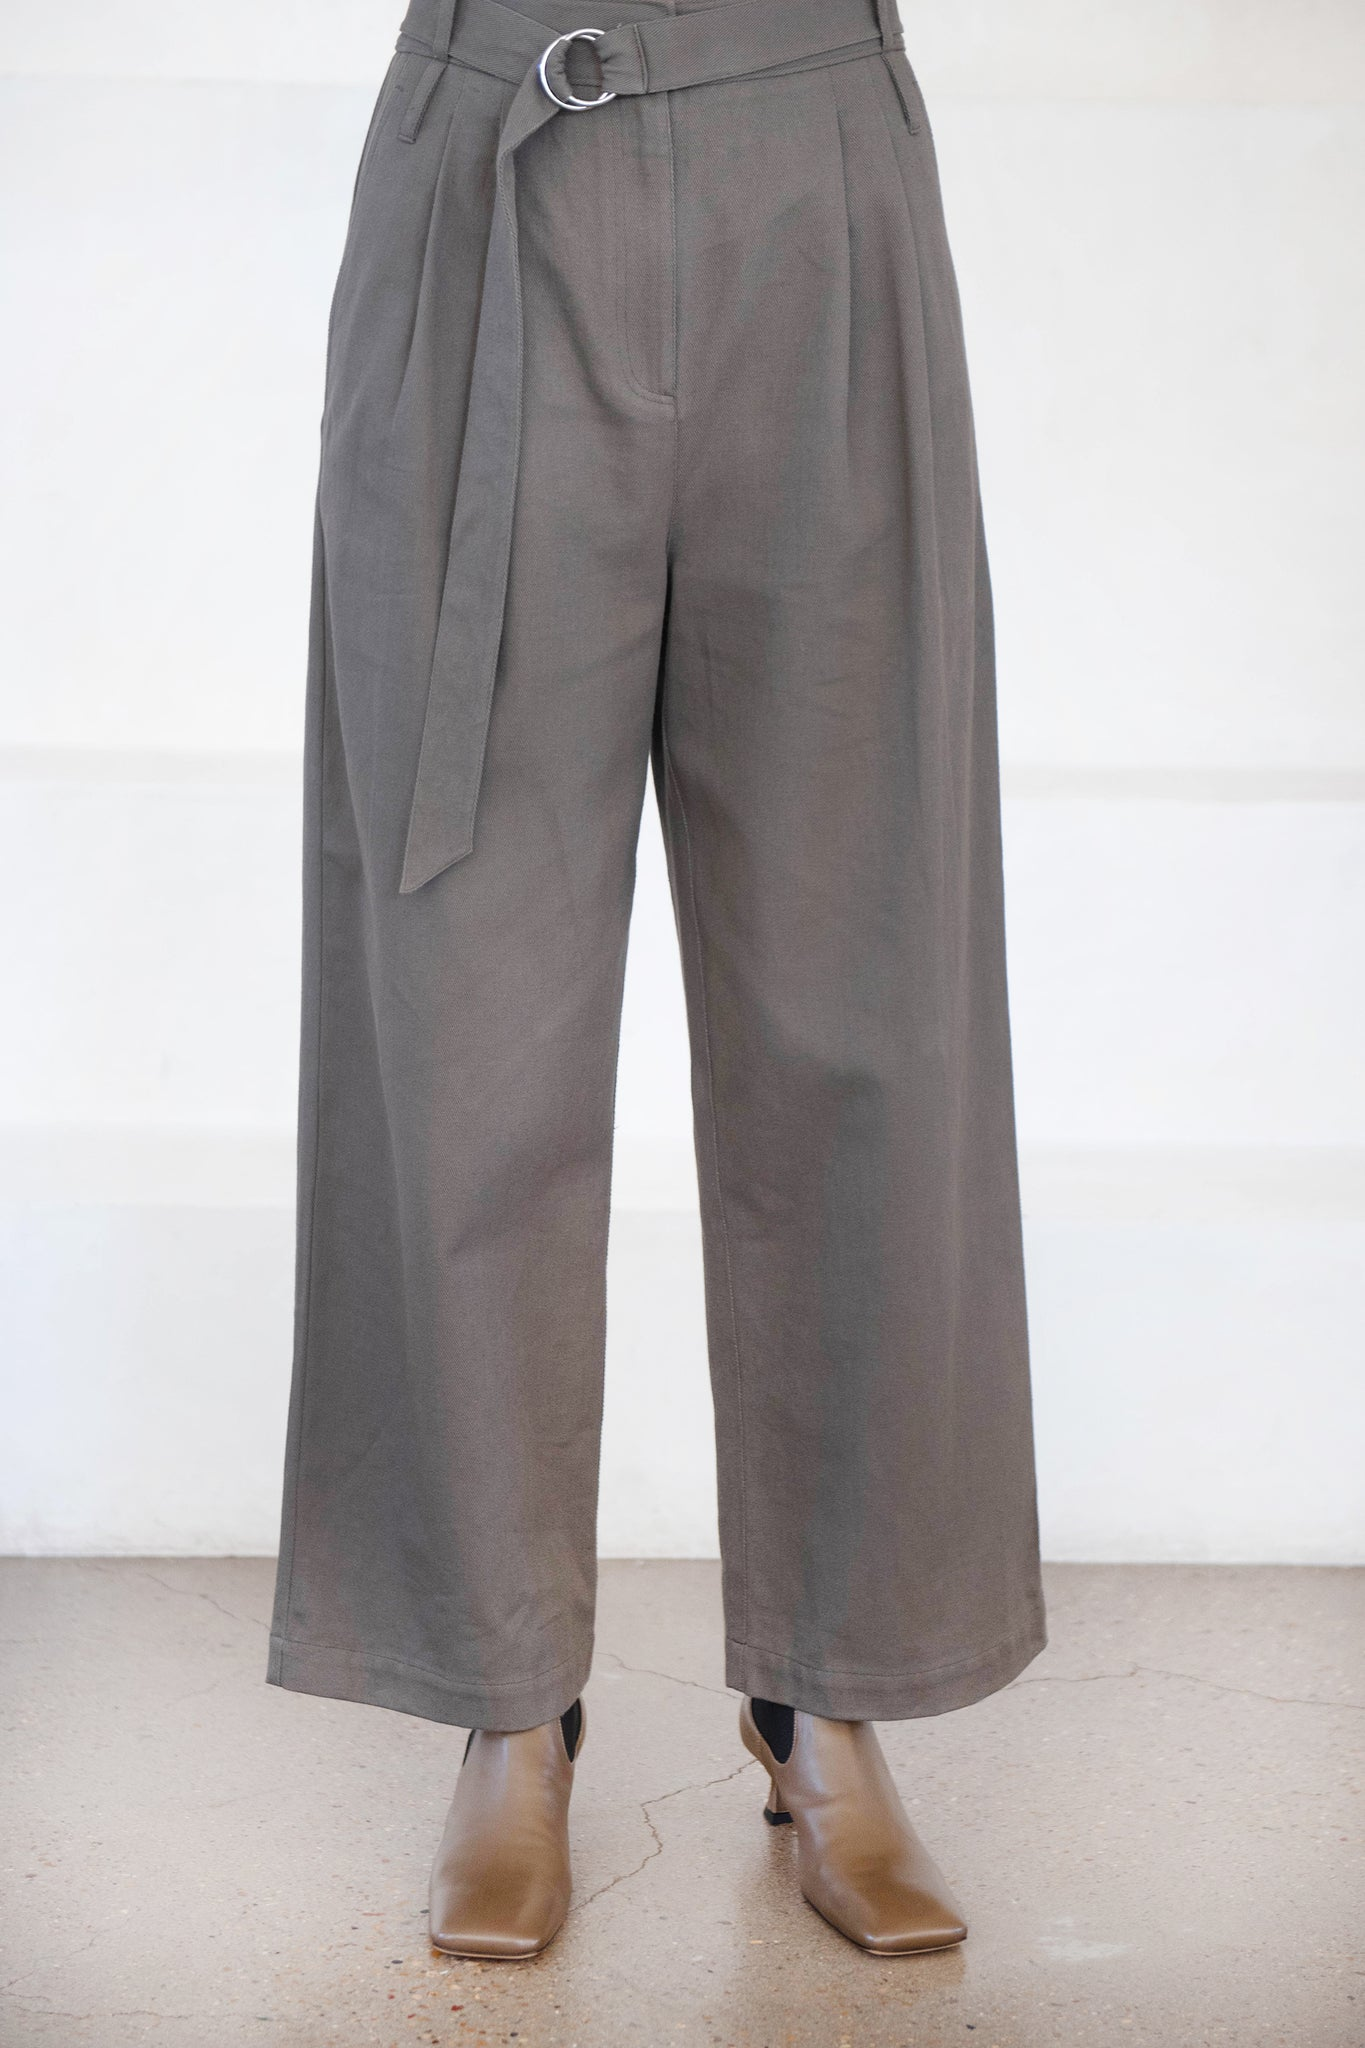 TIBI - stella full length pant, green grey